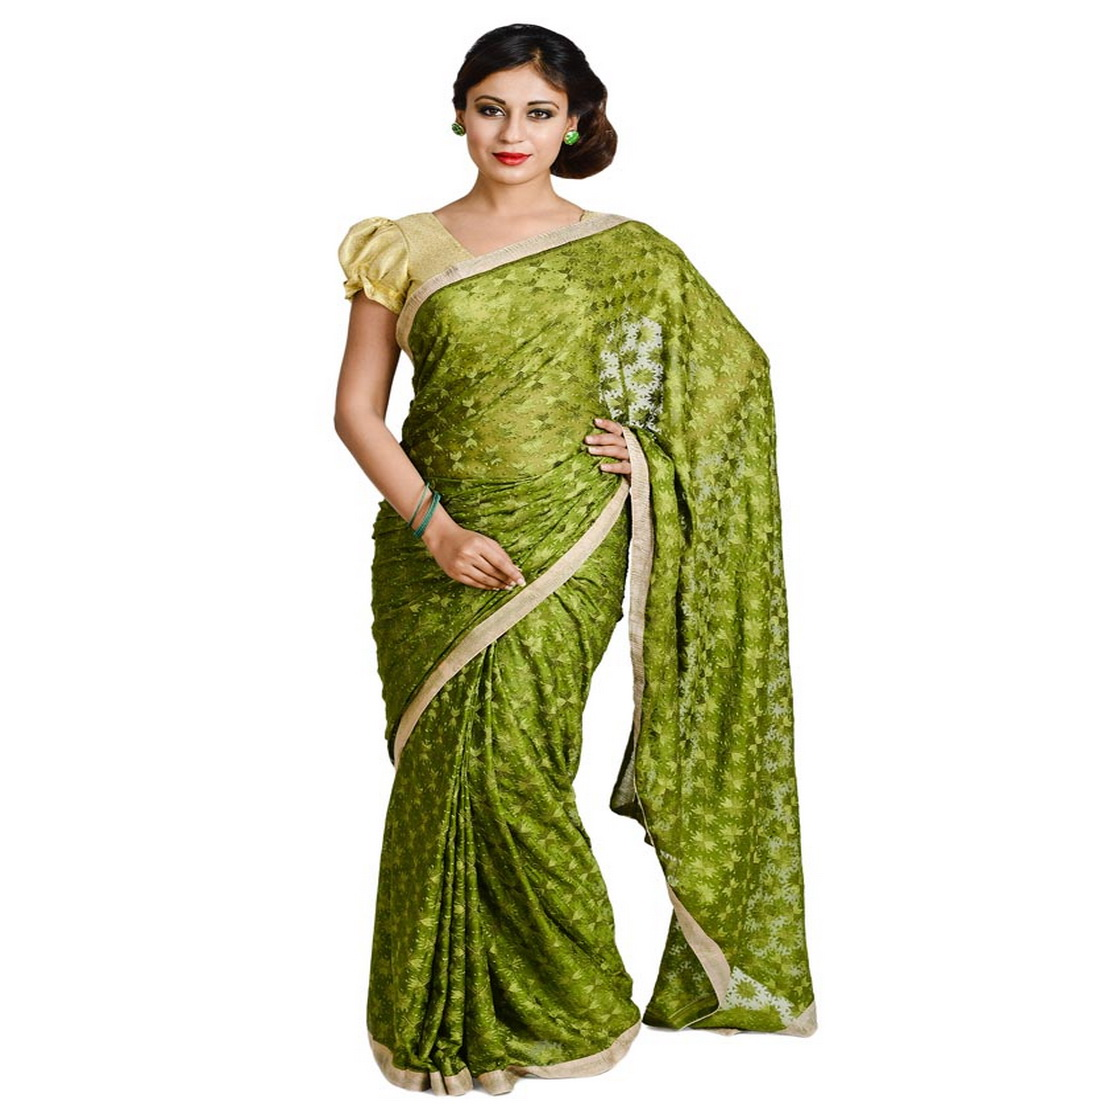 Mehendi Green Phulkari Saree Allover Embroidered Faux Chiffon Sari S15 1